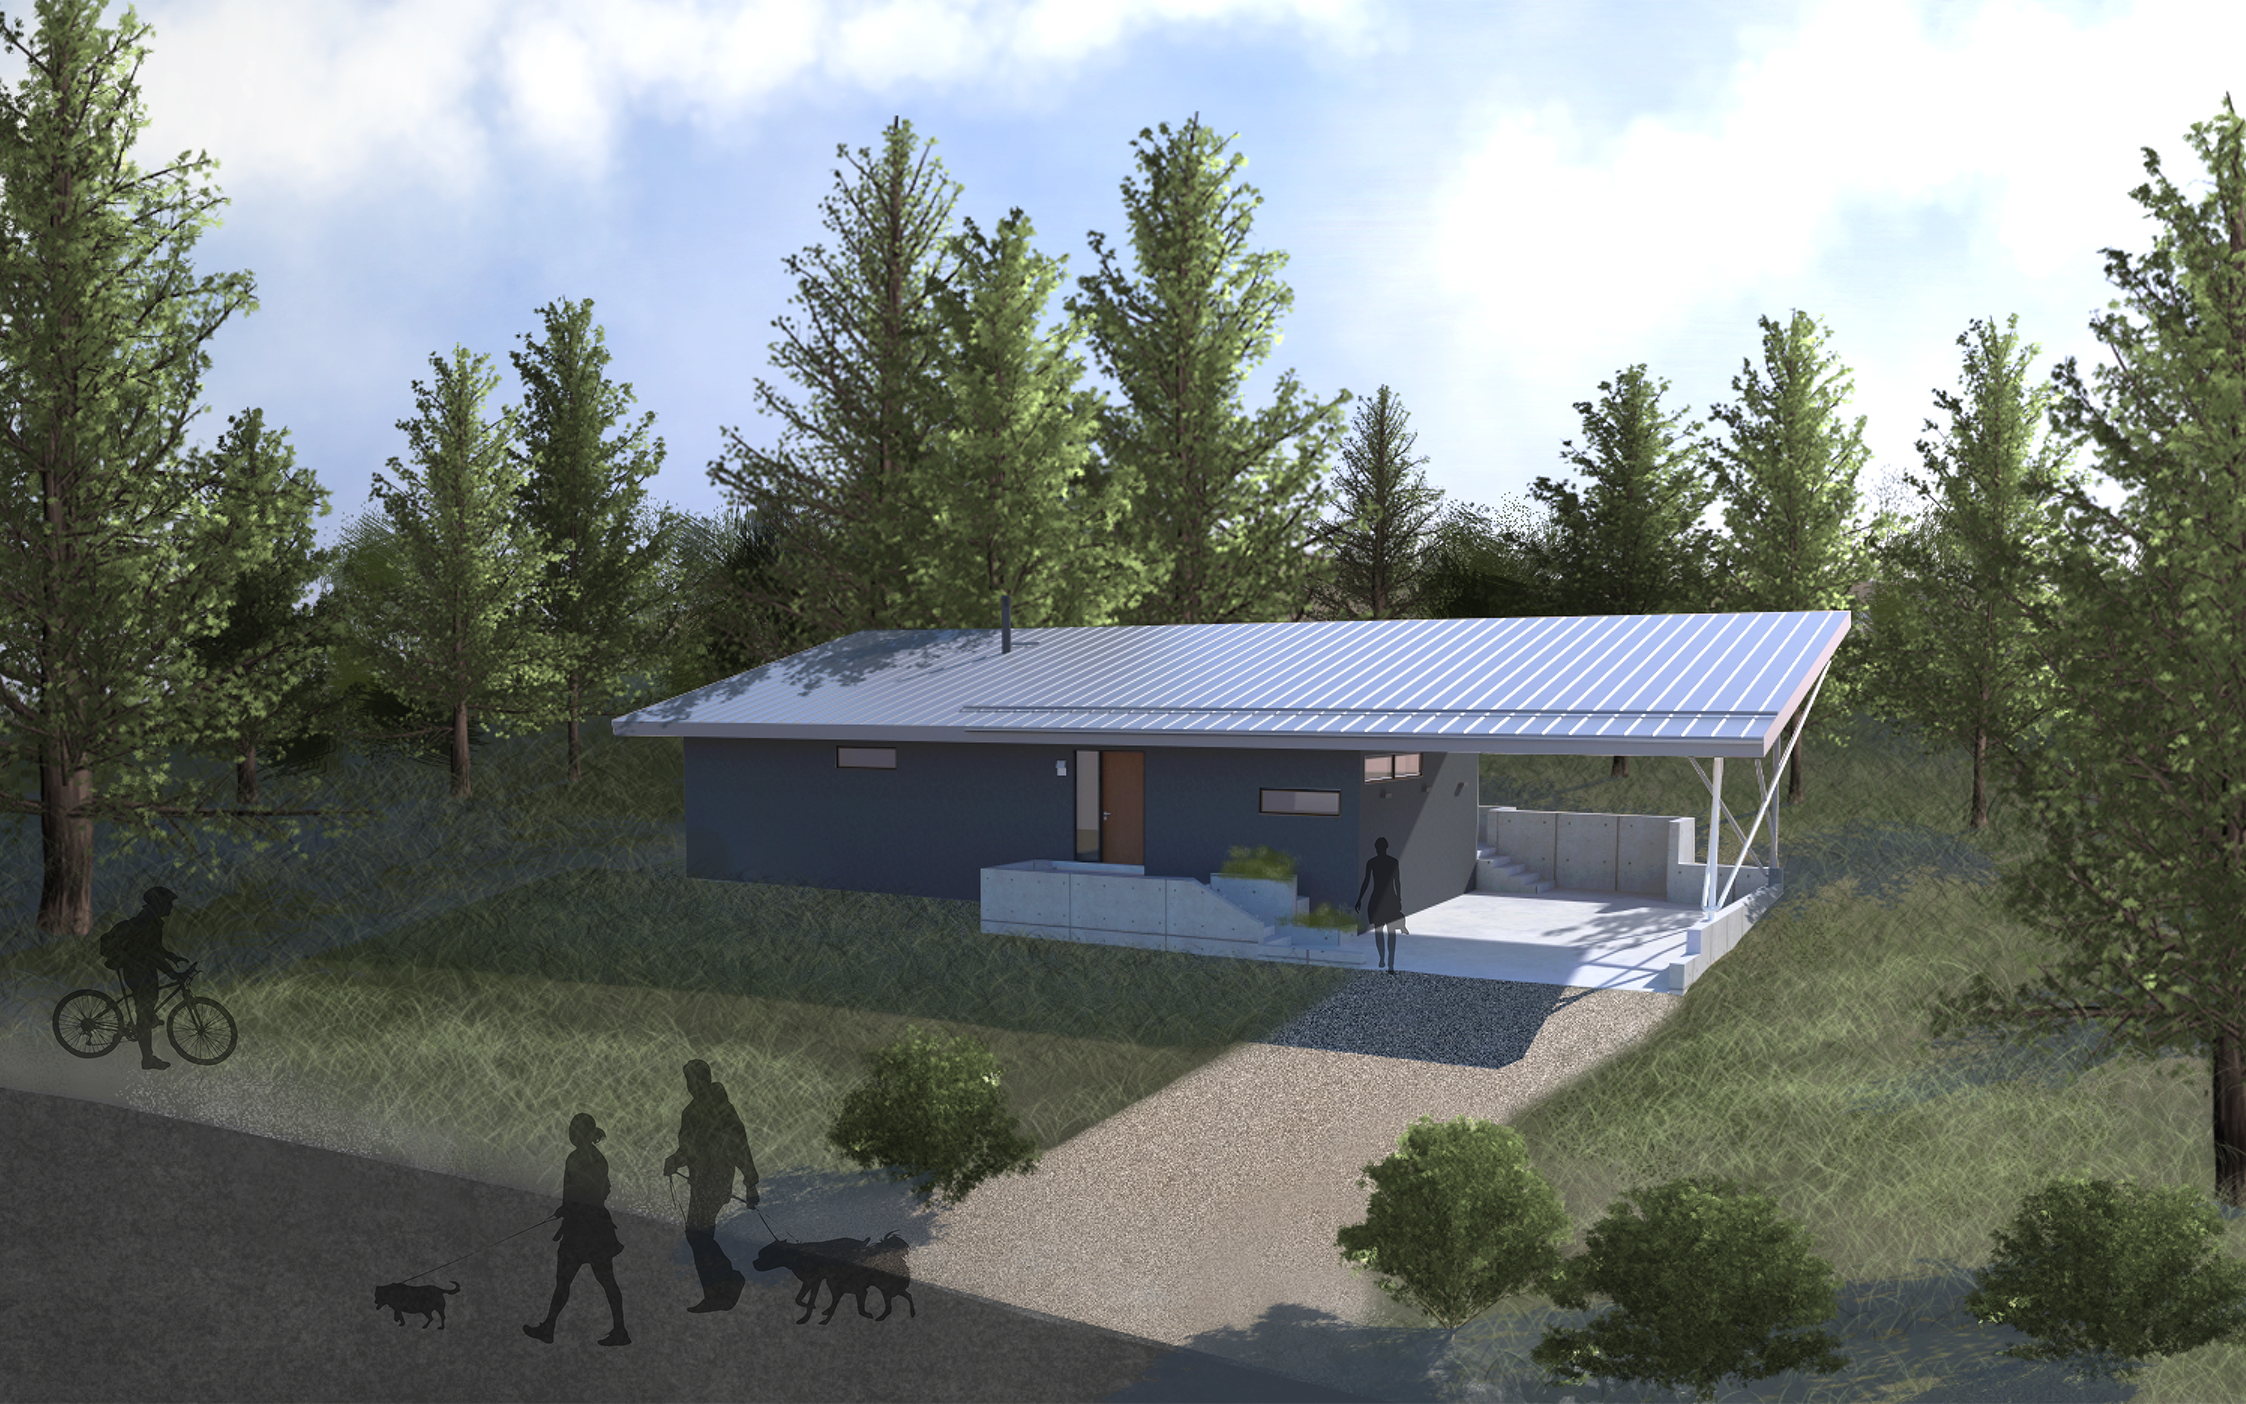 1603_Site_EXTR. RENDER3 - With People_Cropped - for web.png